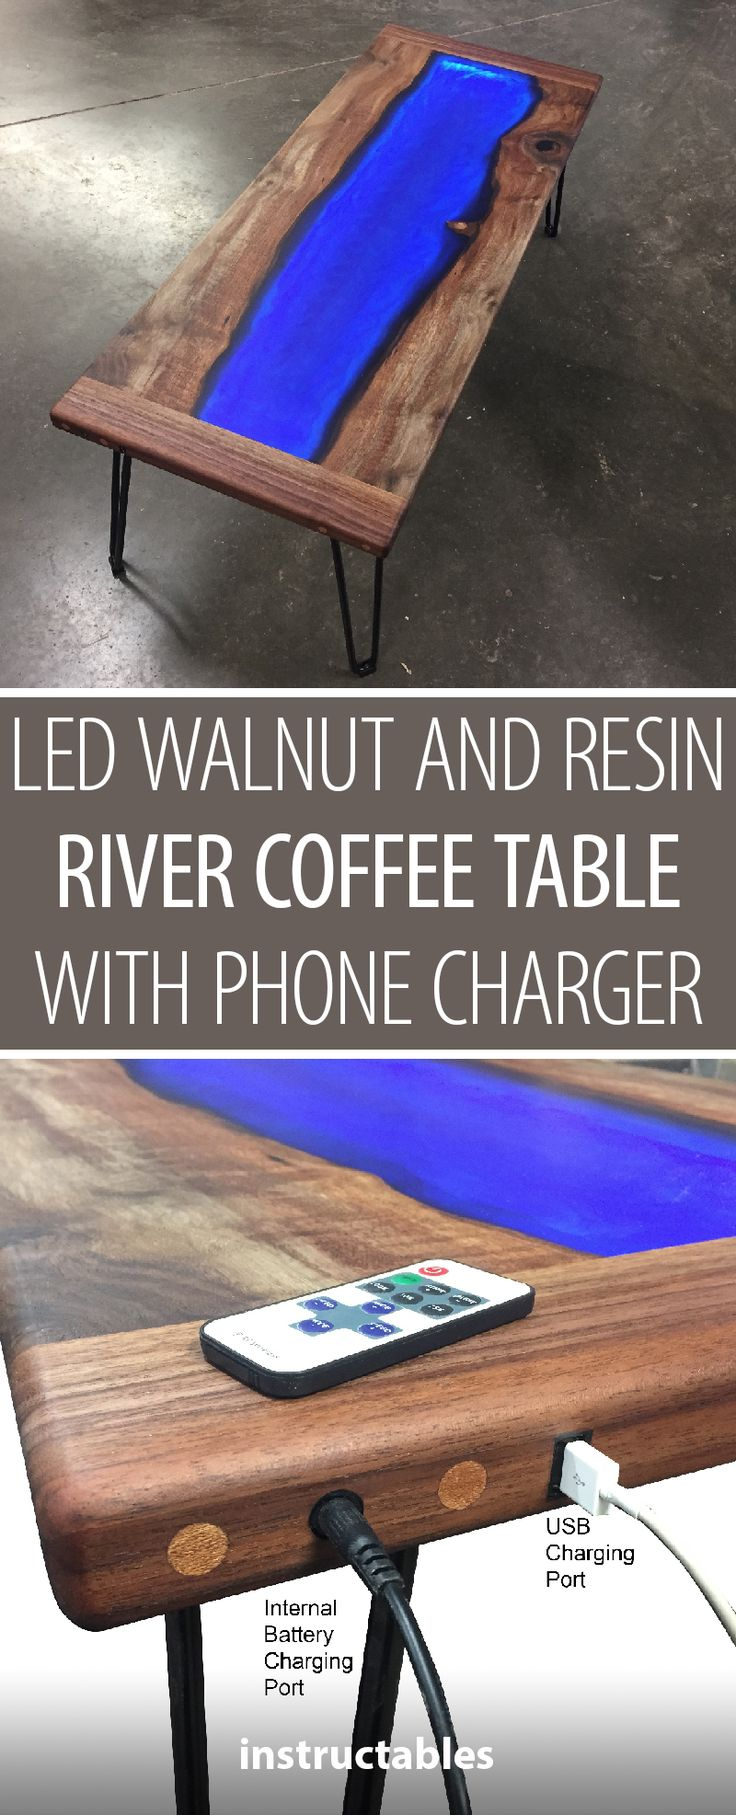 Design a USB port into your next woodworking project to keep all of your devices charged in style!